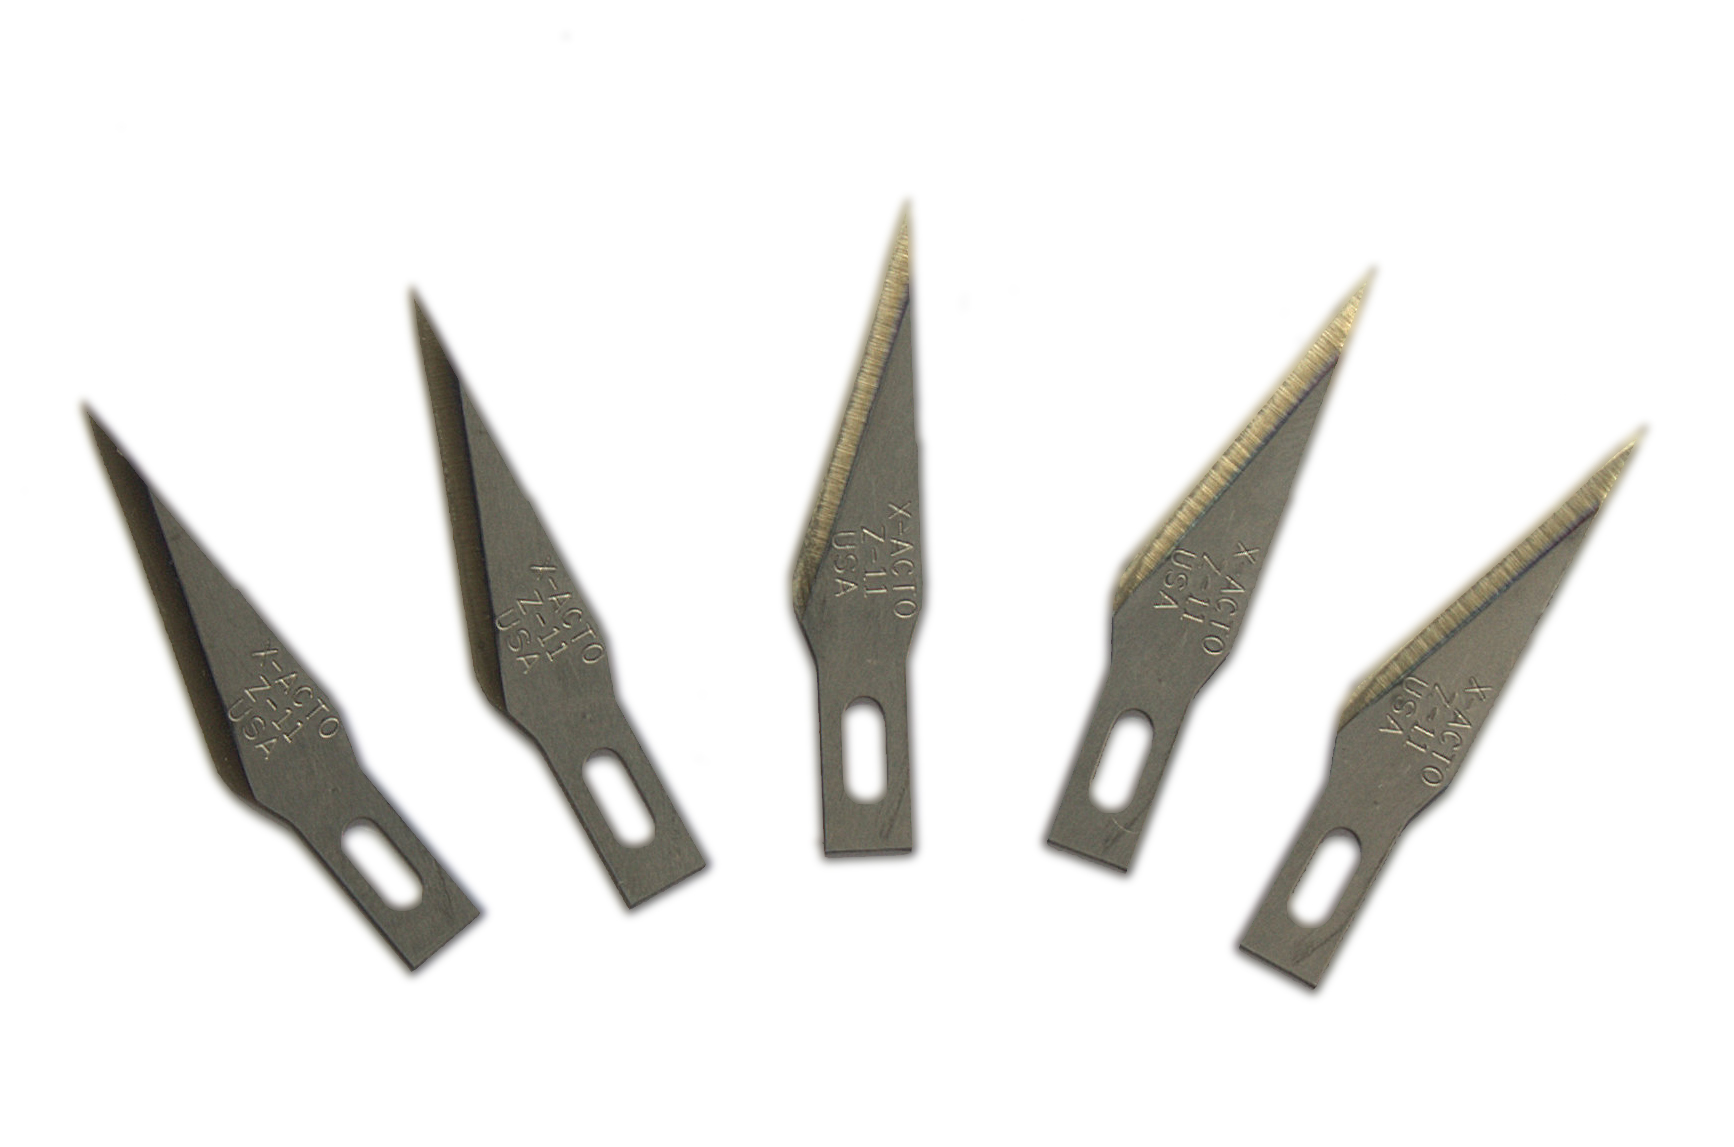 X Acto Z Series Number No 11 Replacement Knife Blades 5